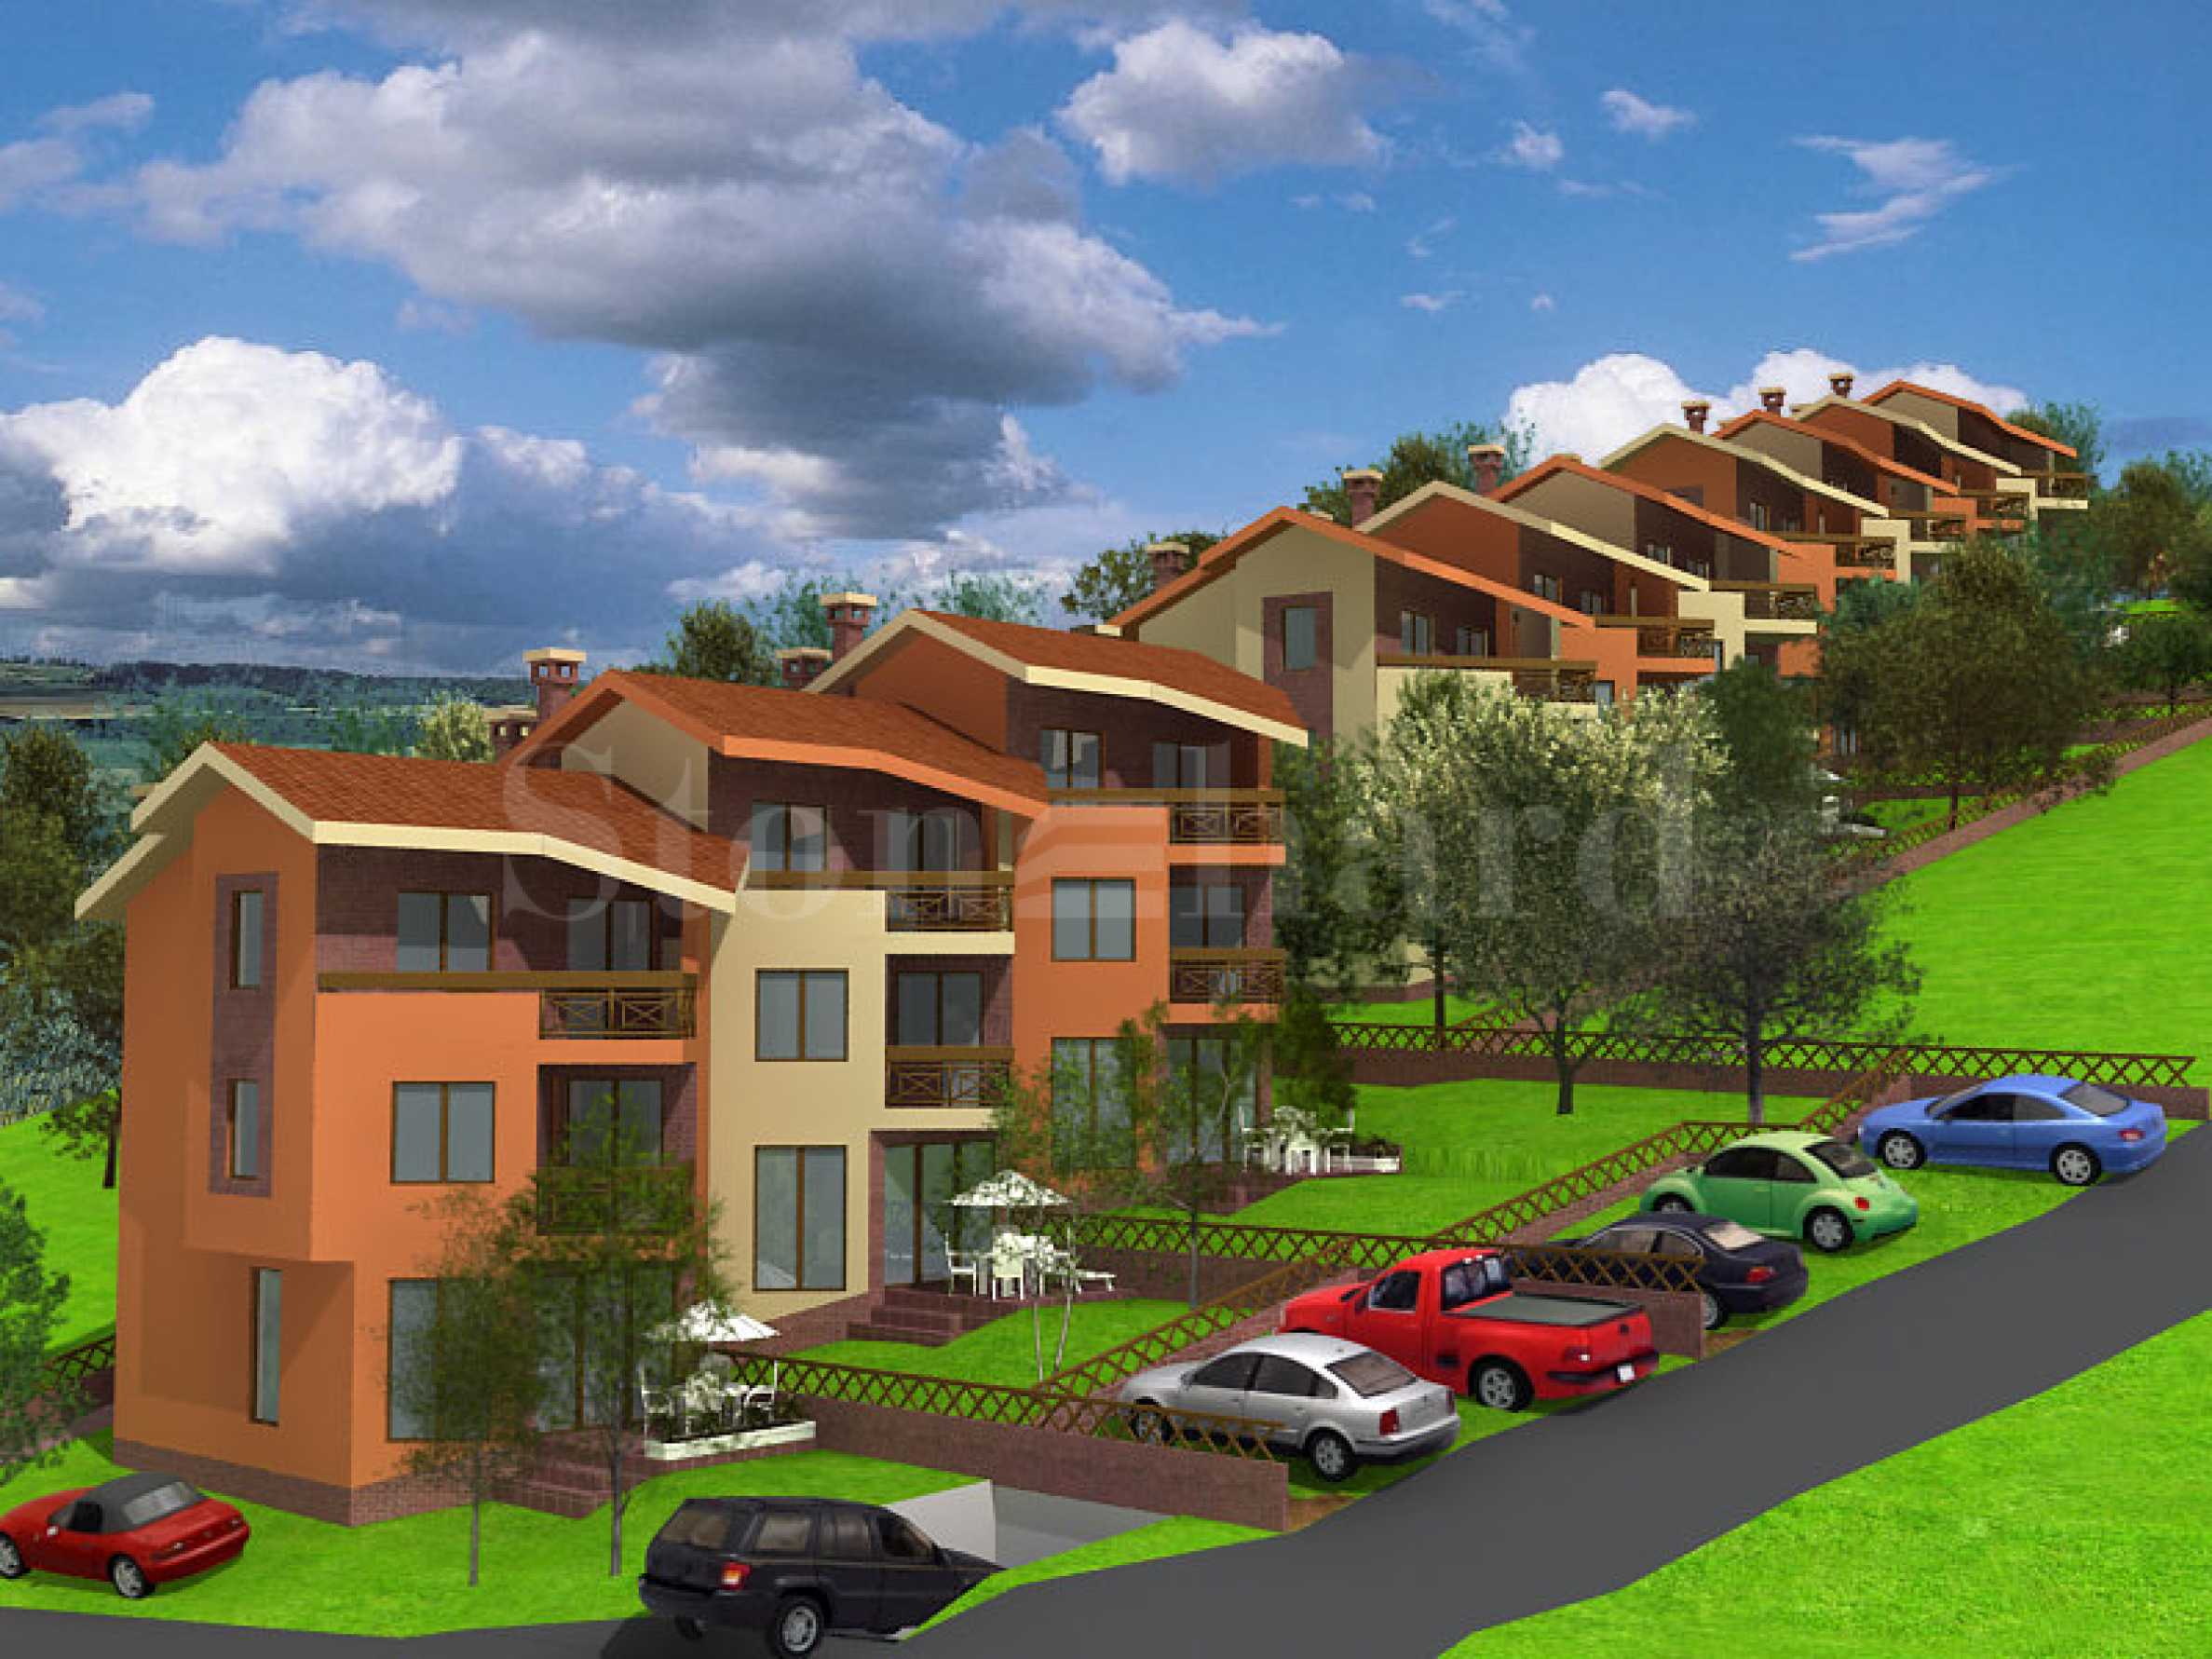 New townhouses at the foot of the mountain1 - Stonehard